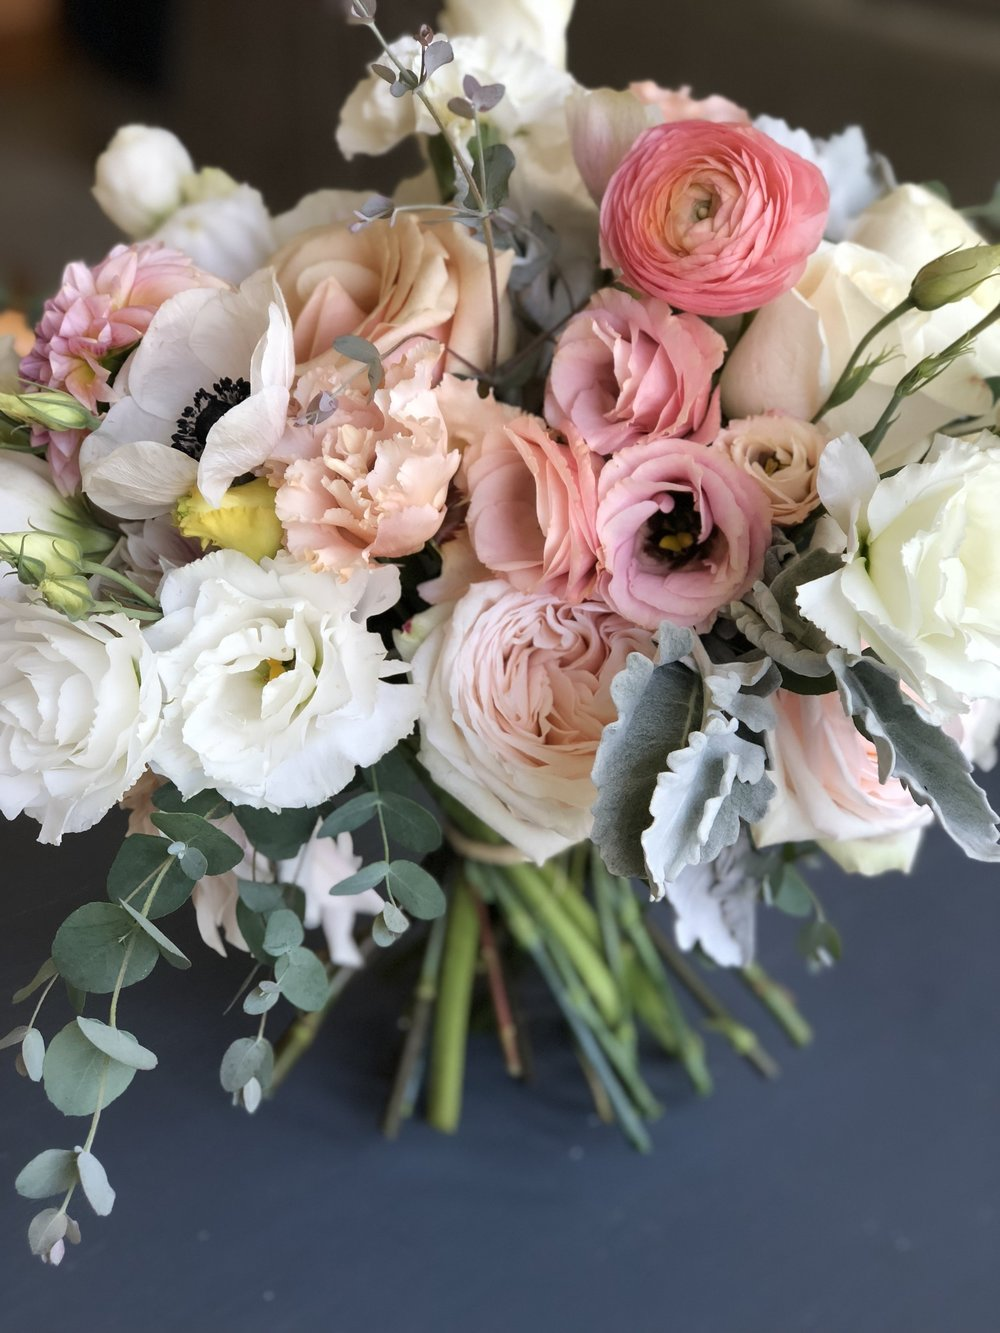 This Bridal bouquet is one of our favorites of the year!